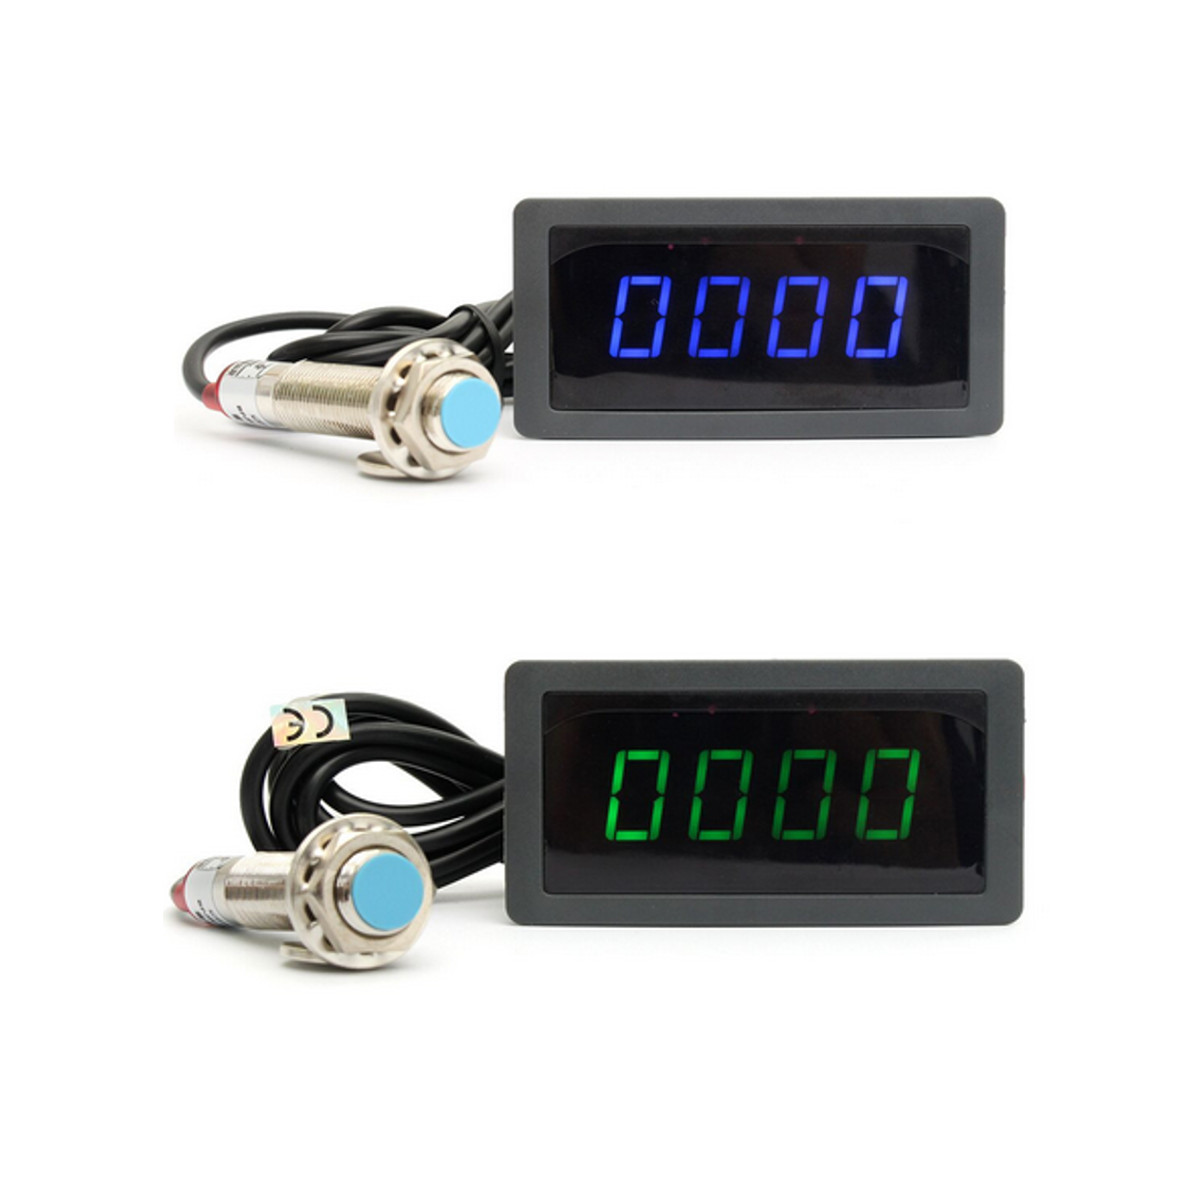 Blue Green 4 Digital LED Tachometer RPM Speed Meter+Proximity Switch Sensor 12V Promotion 012602 motor speed sensor module w switch deep blue